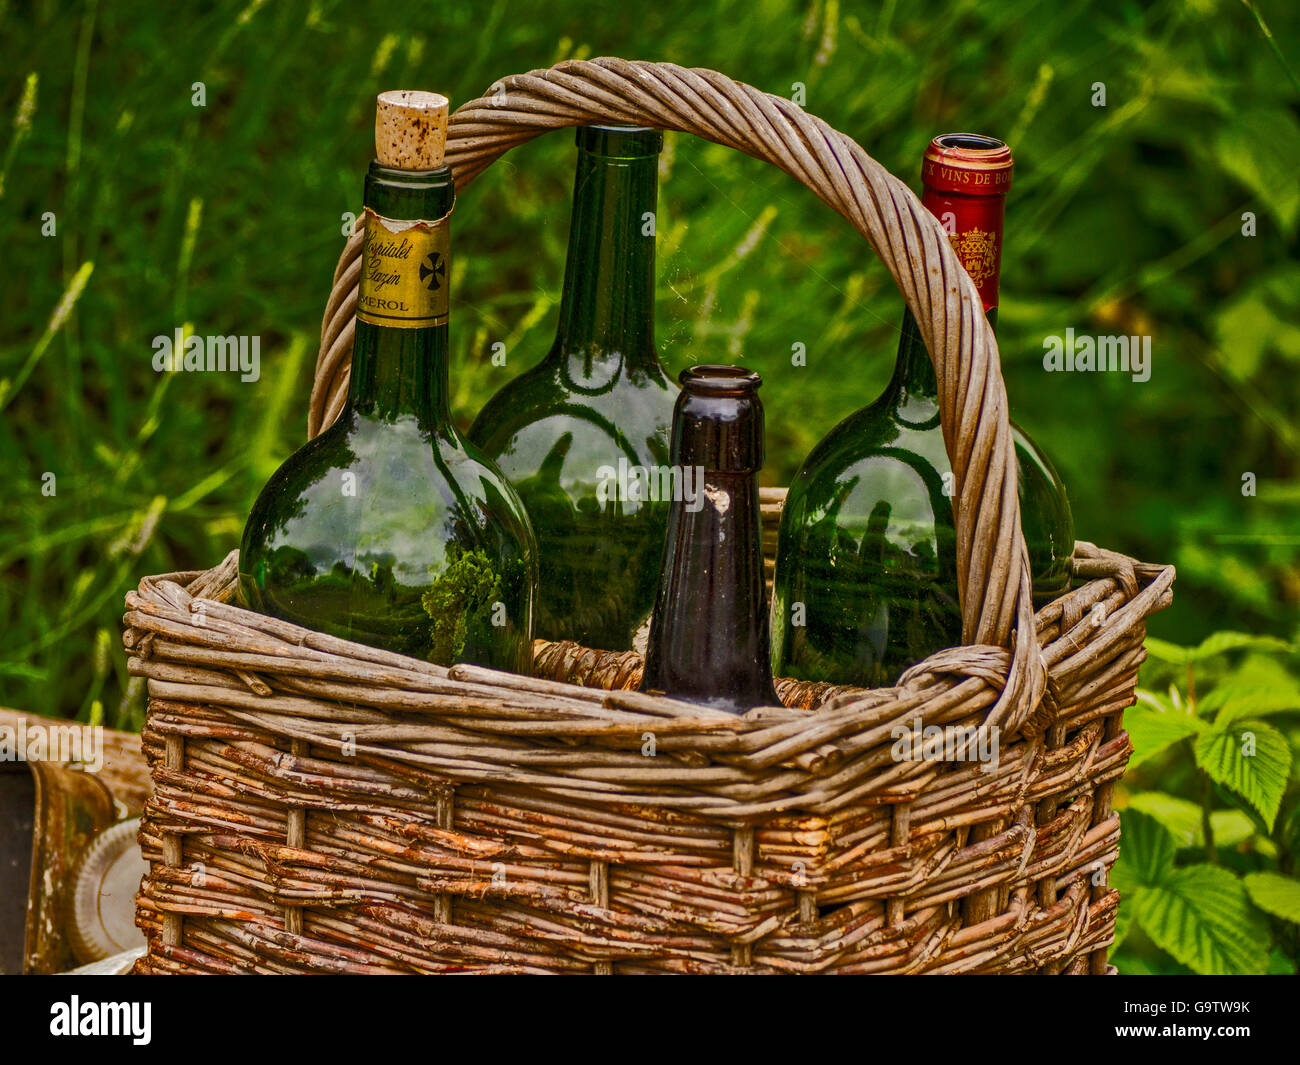 A still life of four old empty wine bottles in a basket - Stock Image